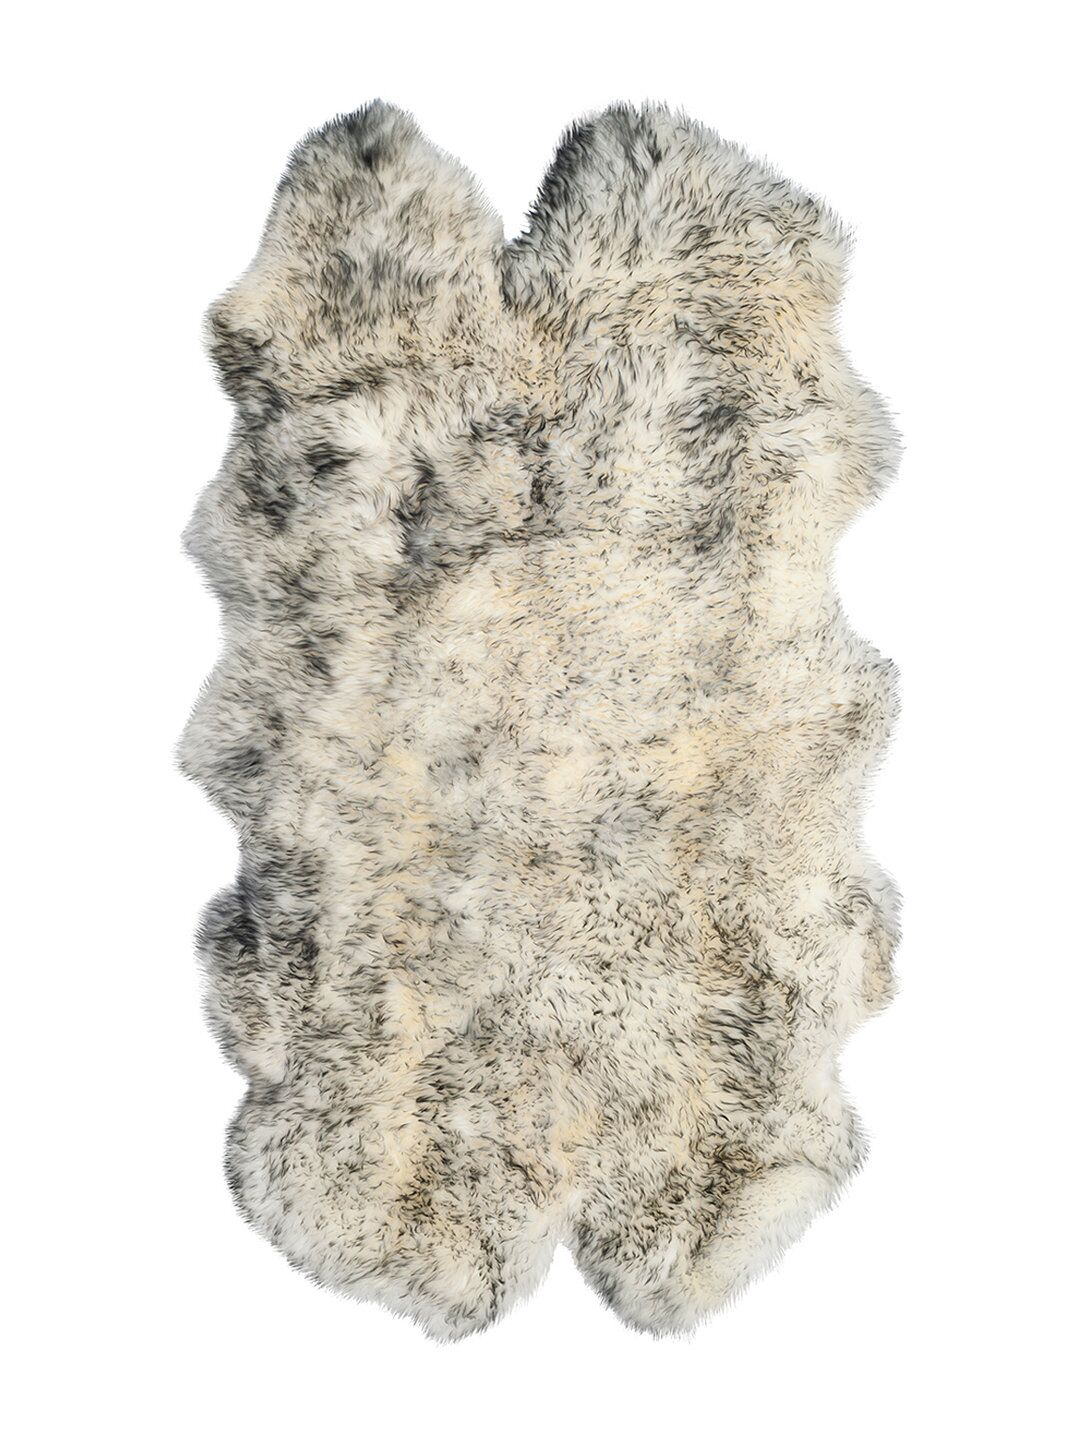 Oma Hand-Woven Sheepskin Gradient Gray Area Rug